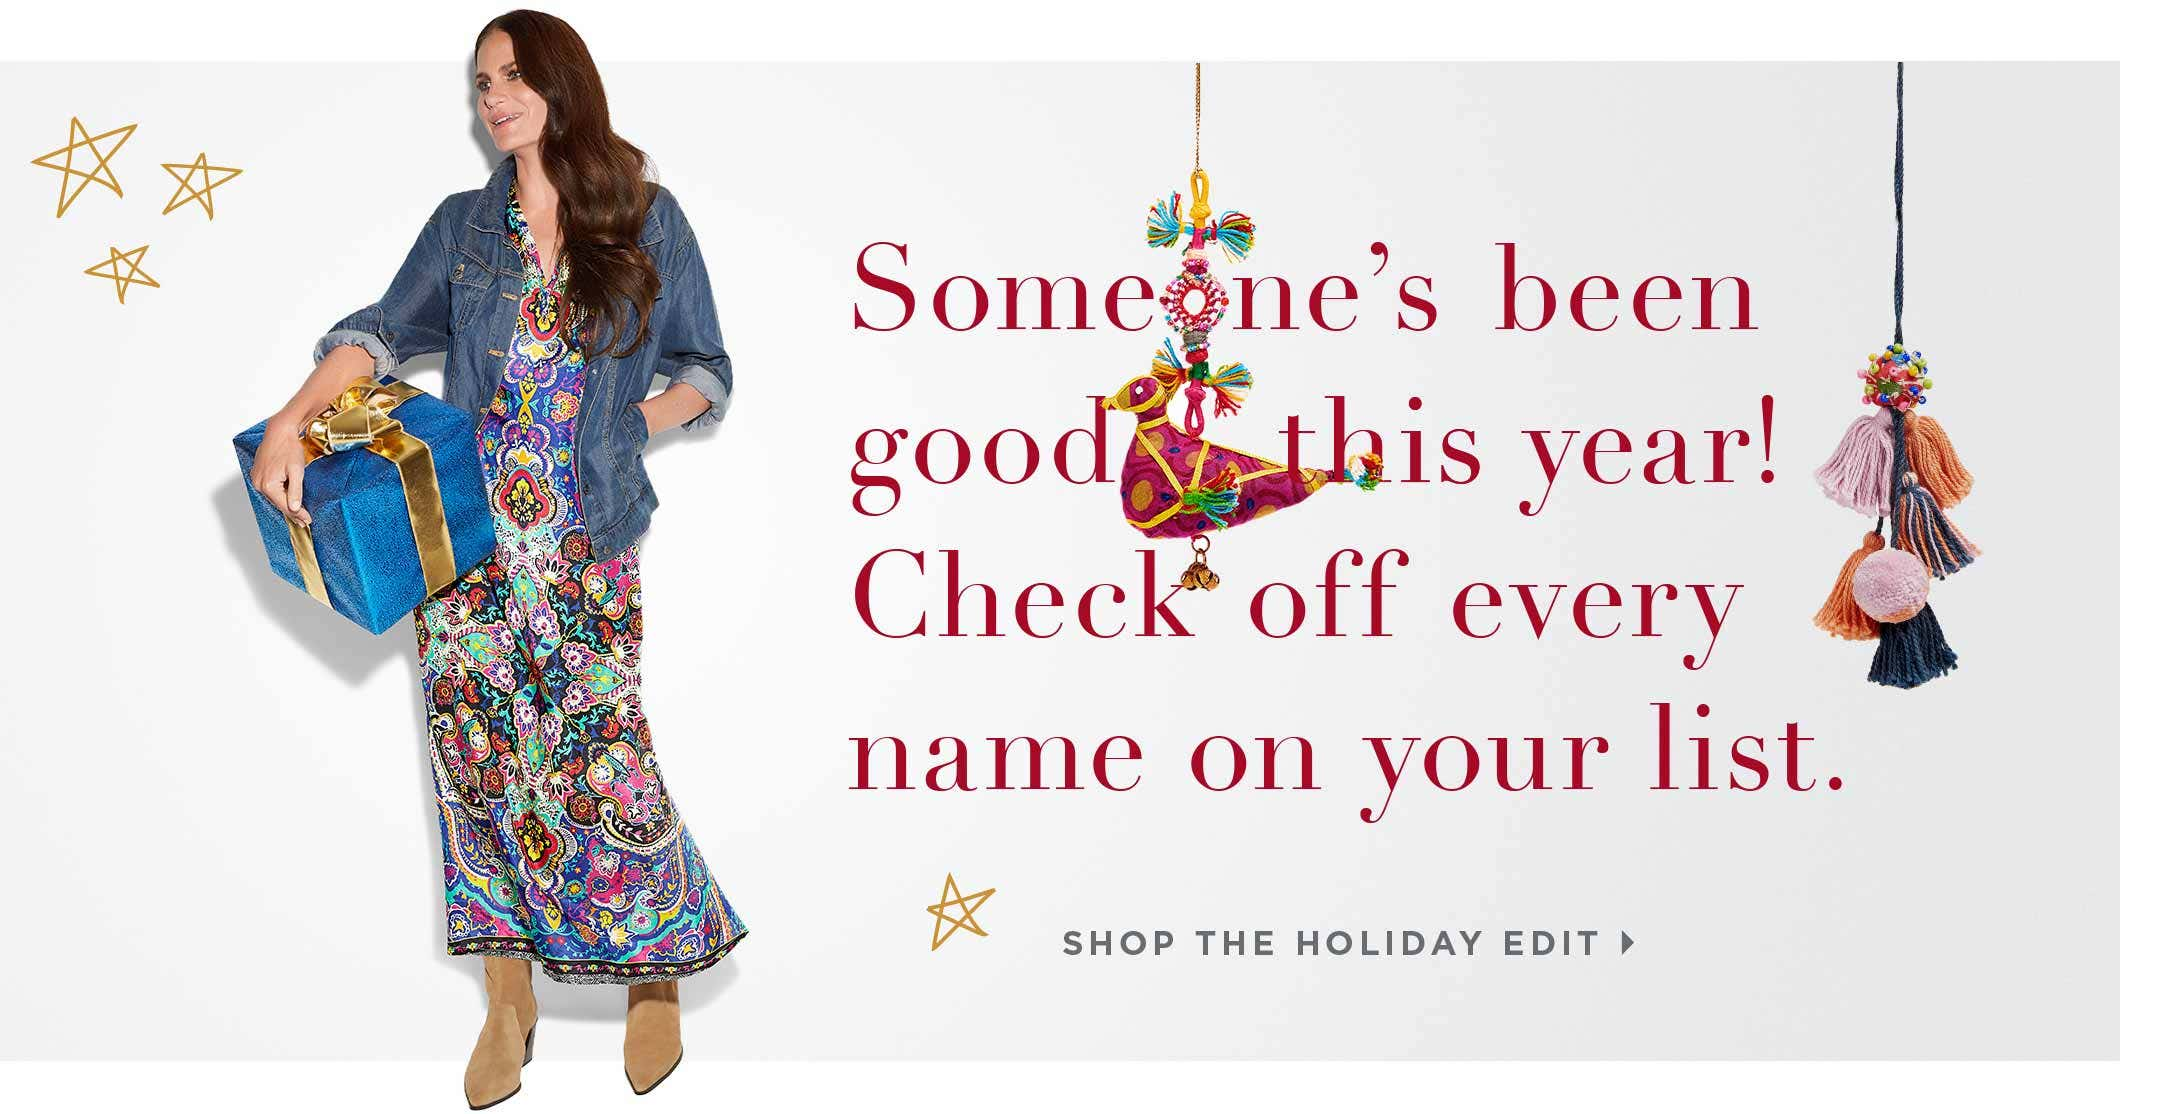 Someone's been good this year! Check off every name on your list. Shop the Holiday edit.